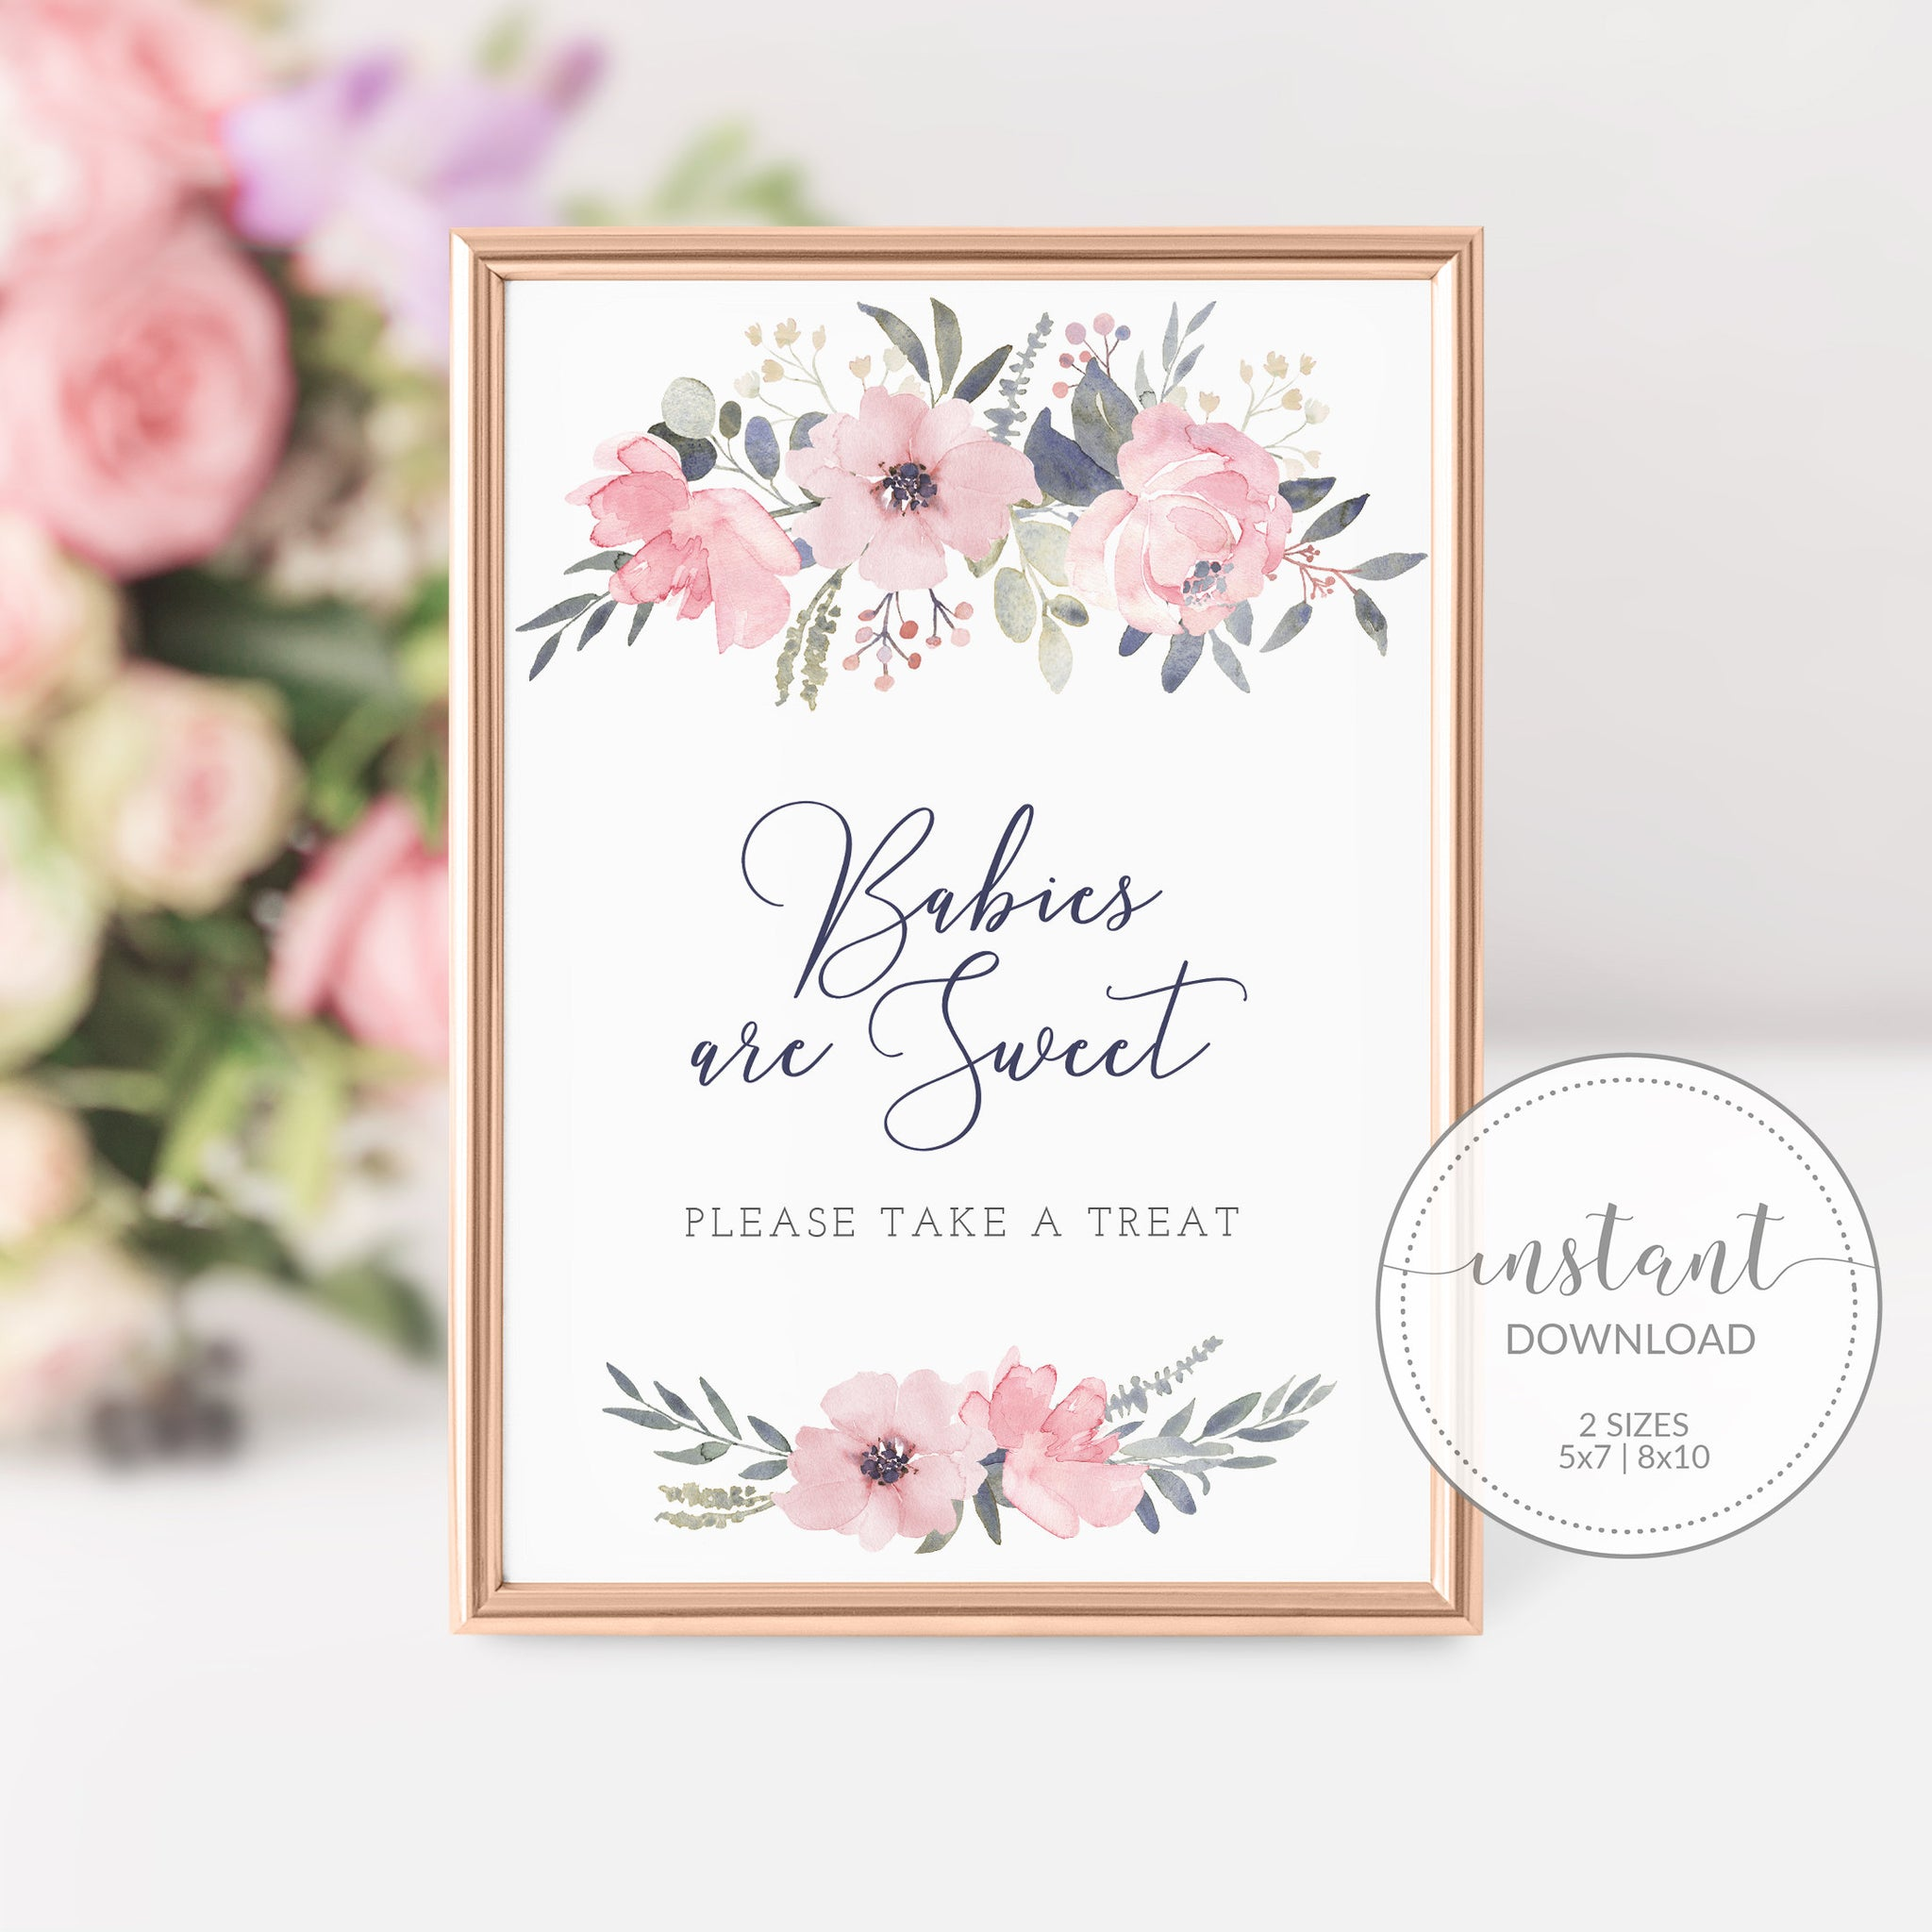 Navy and Blush Floral Printable Baby Shower Treat Sign, INSTANT DOWNLOAD, Dessert Table Floral Baby Shower Decorations and Supplies - NB100 - @PlumPolkaDot